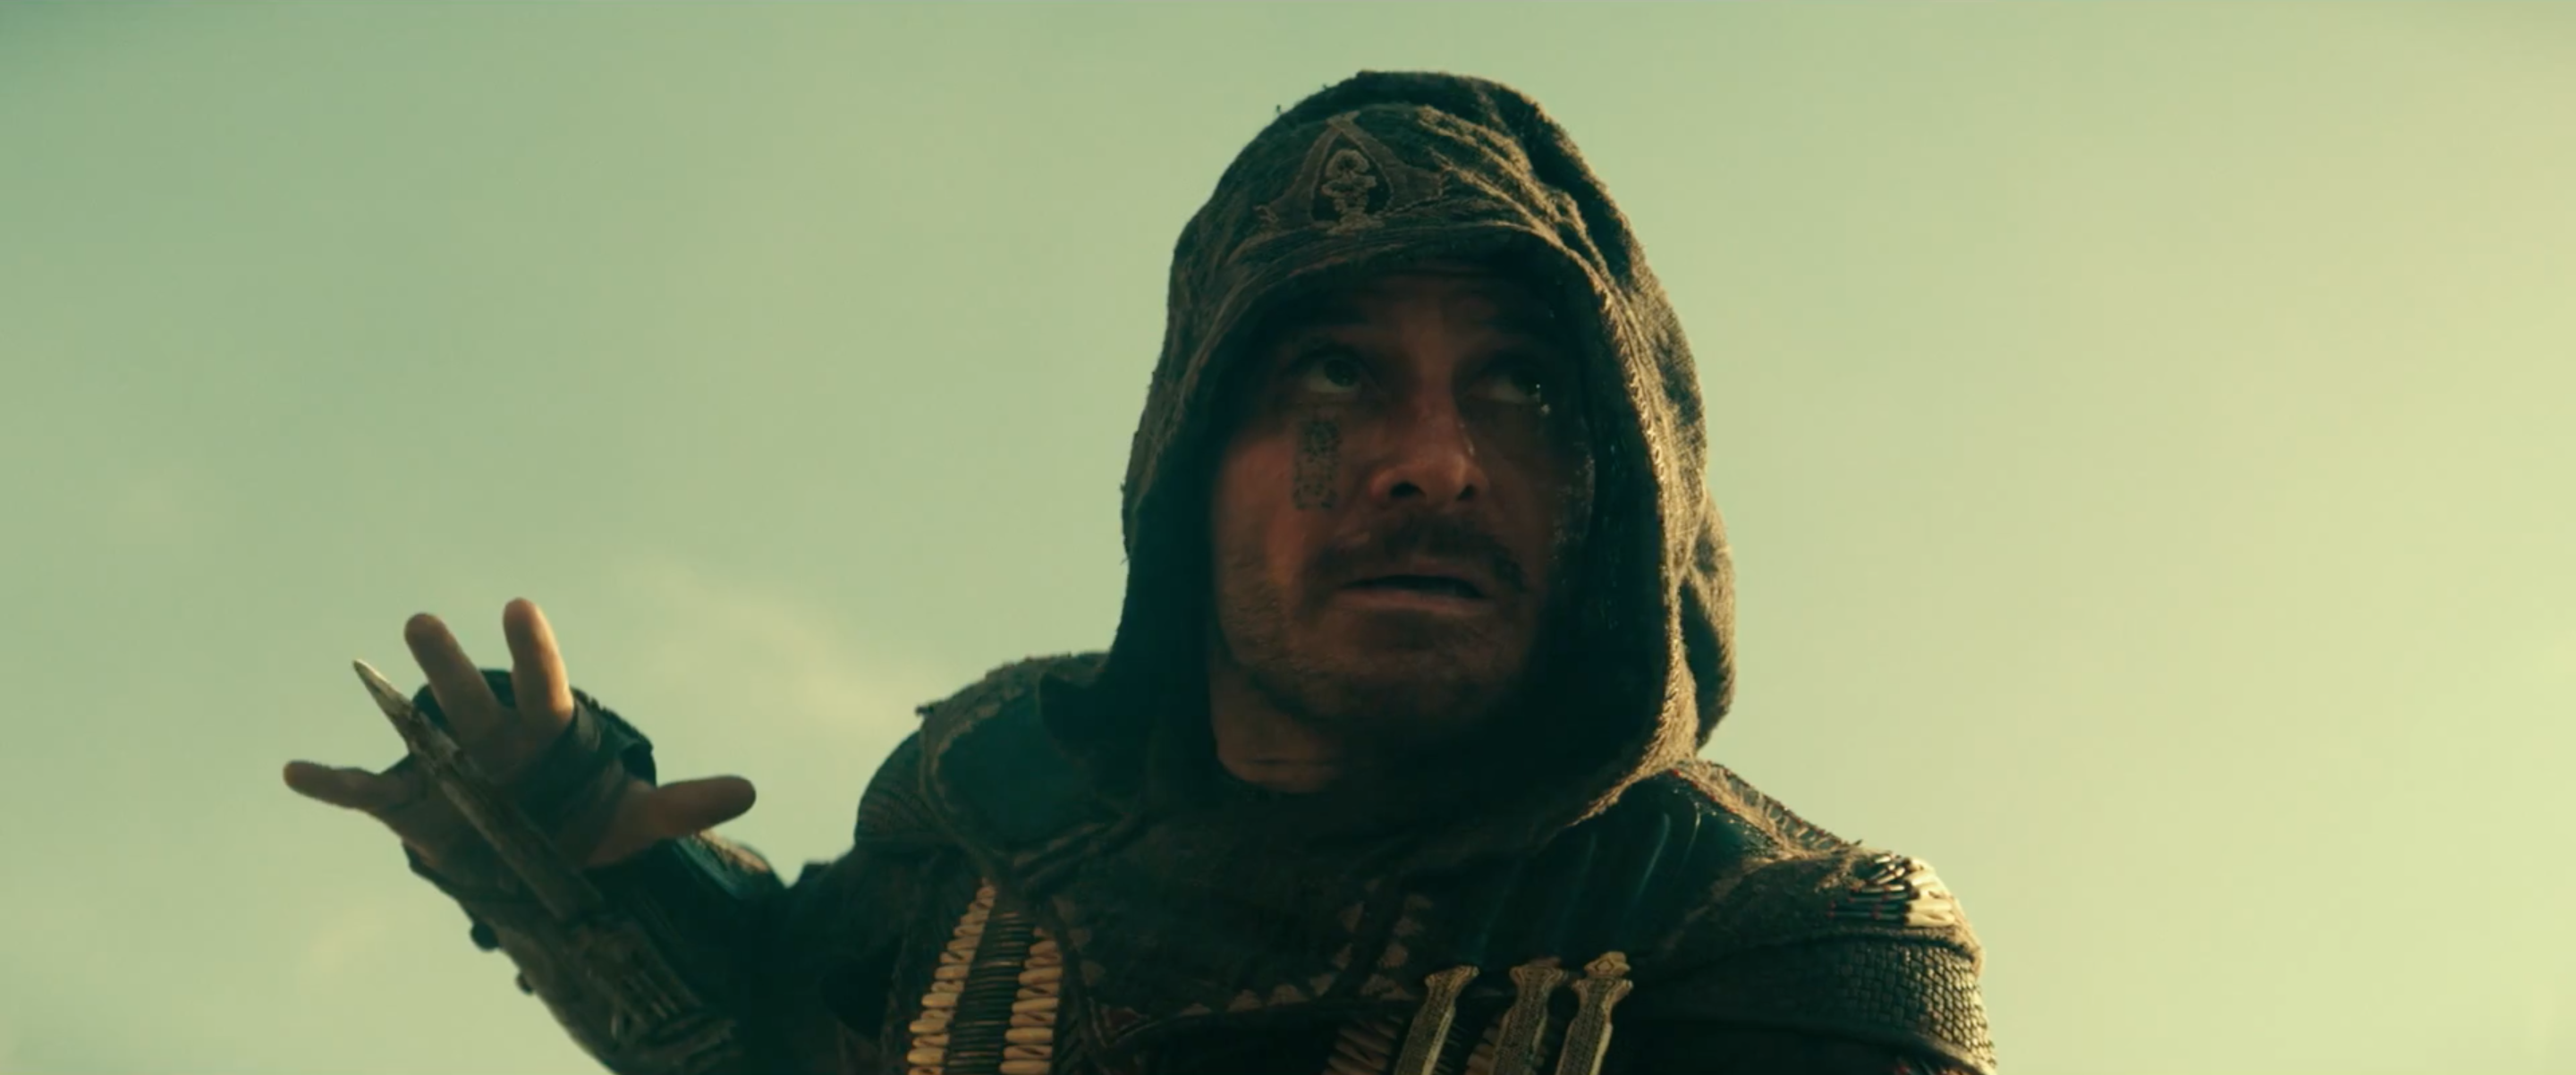 The Chase is on in New 'Assassin's Creed' Clip